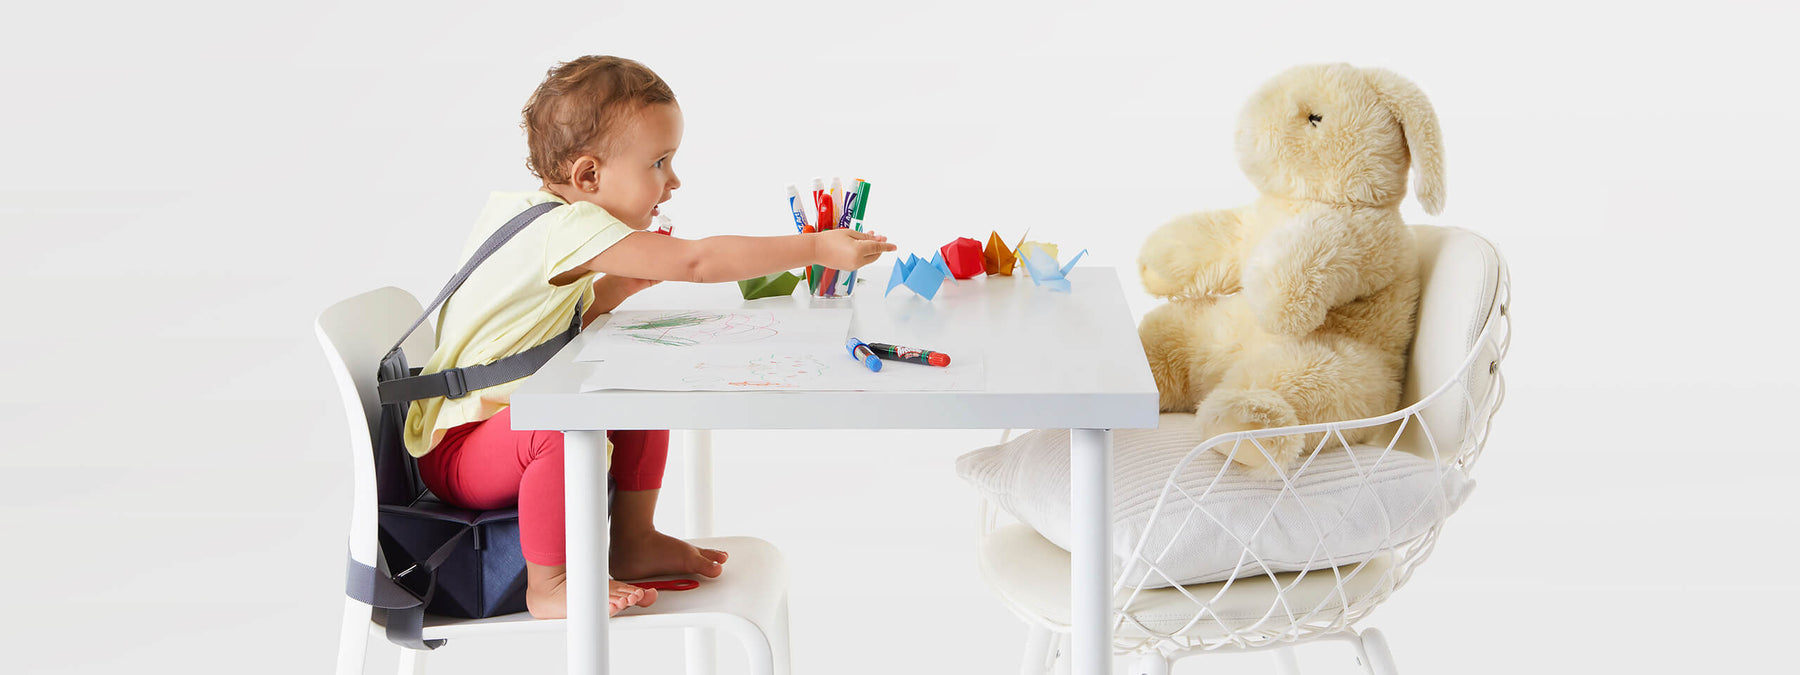 Pop-up™ Booster Baby Seat with little kid seating on it